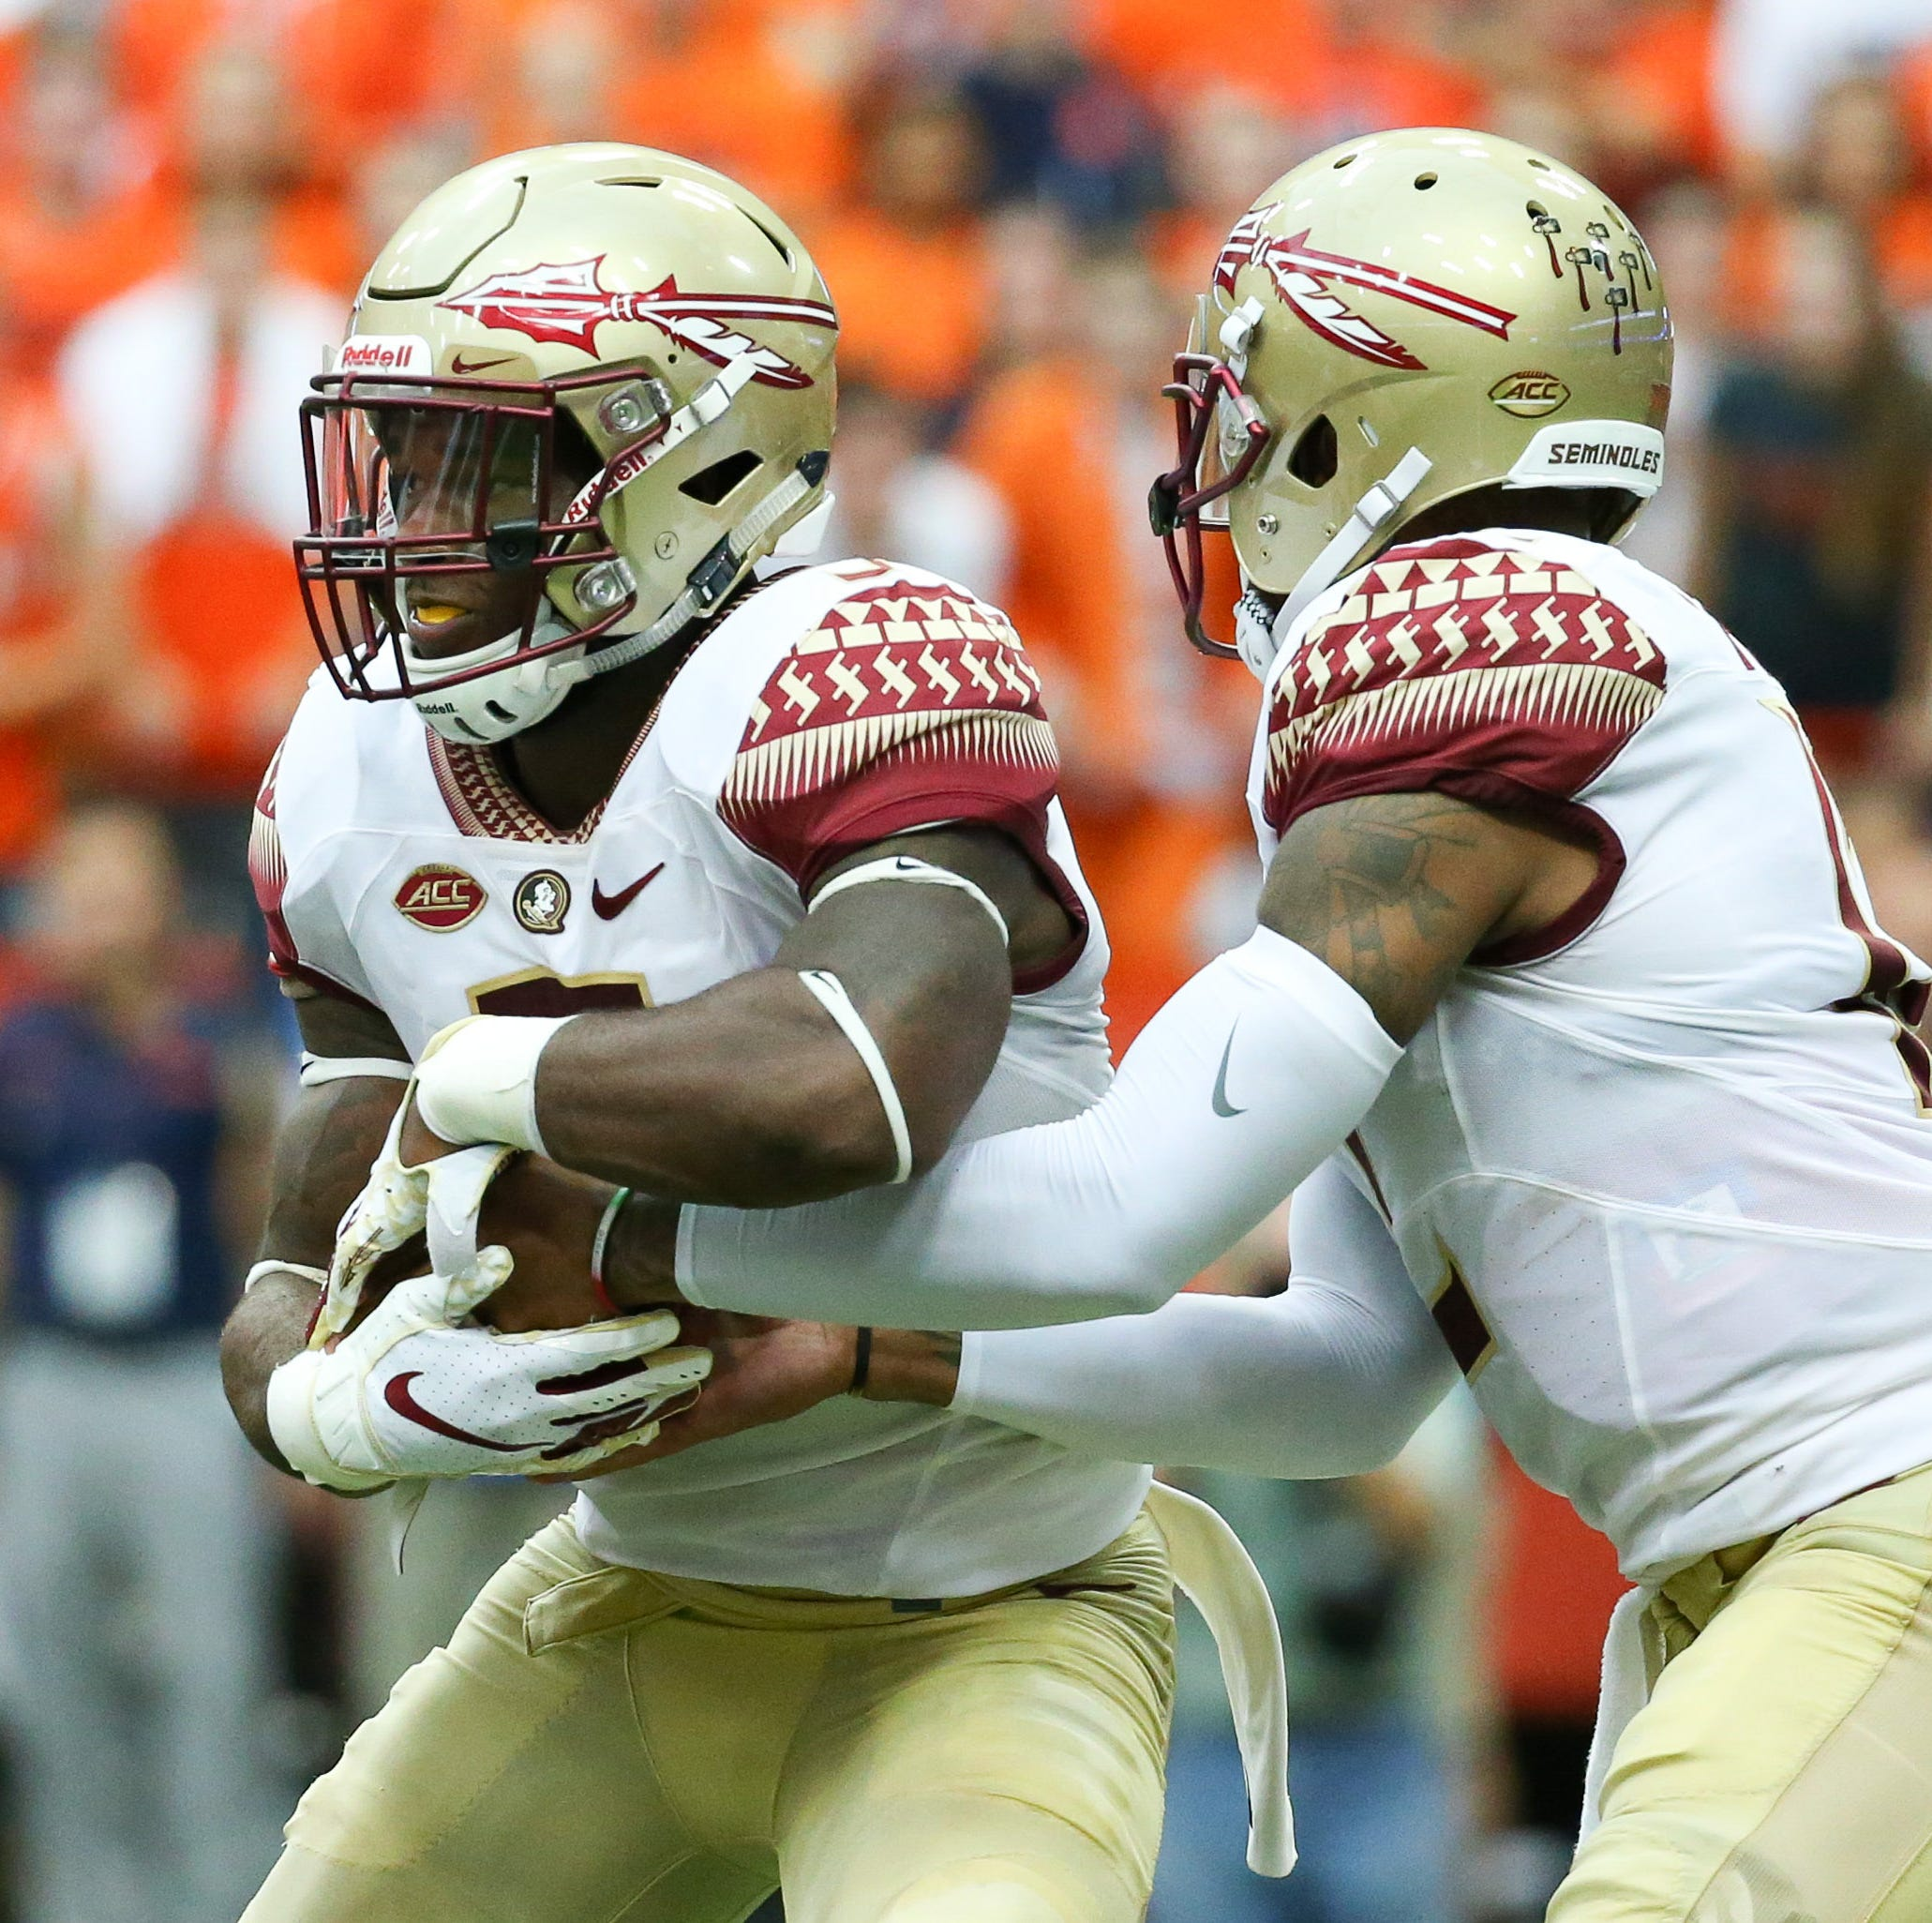 FSU football hopes to get run game going by getting back to the fundamentals